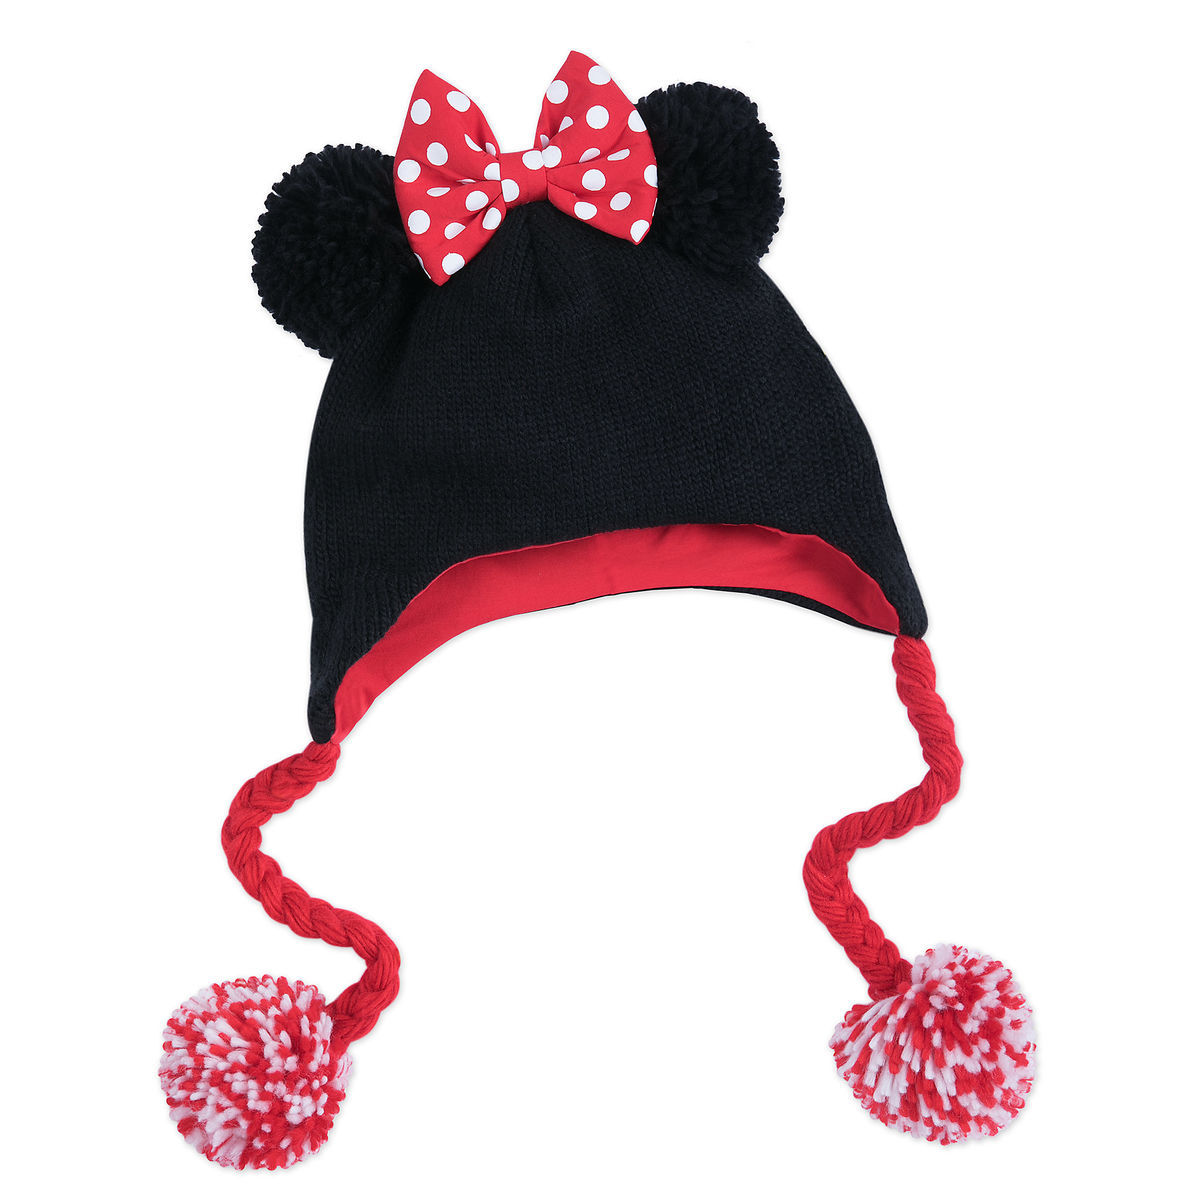 6fdab19a746 Product Image of Minnie Mouse Knit Hat for Adults   1